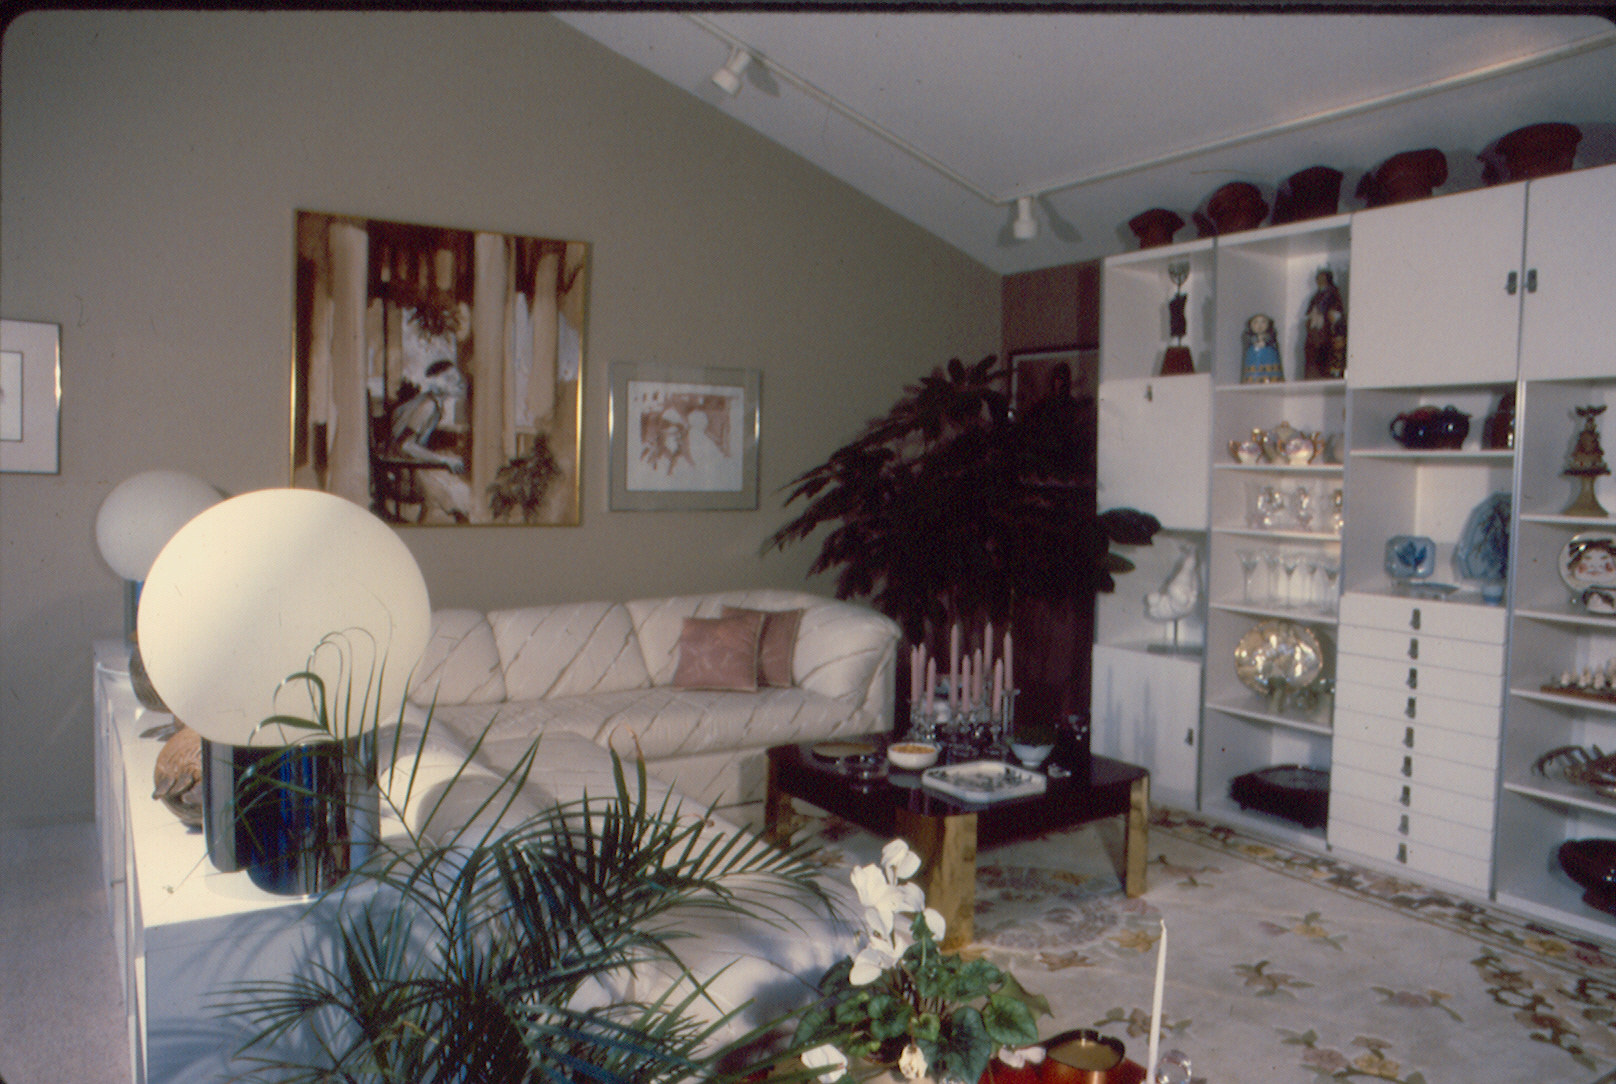 5011belllivingroom.jpg